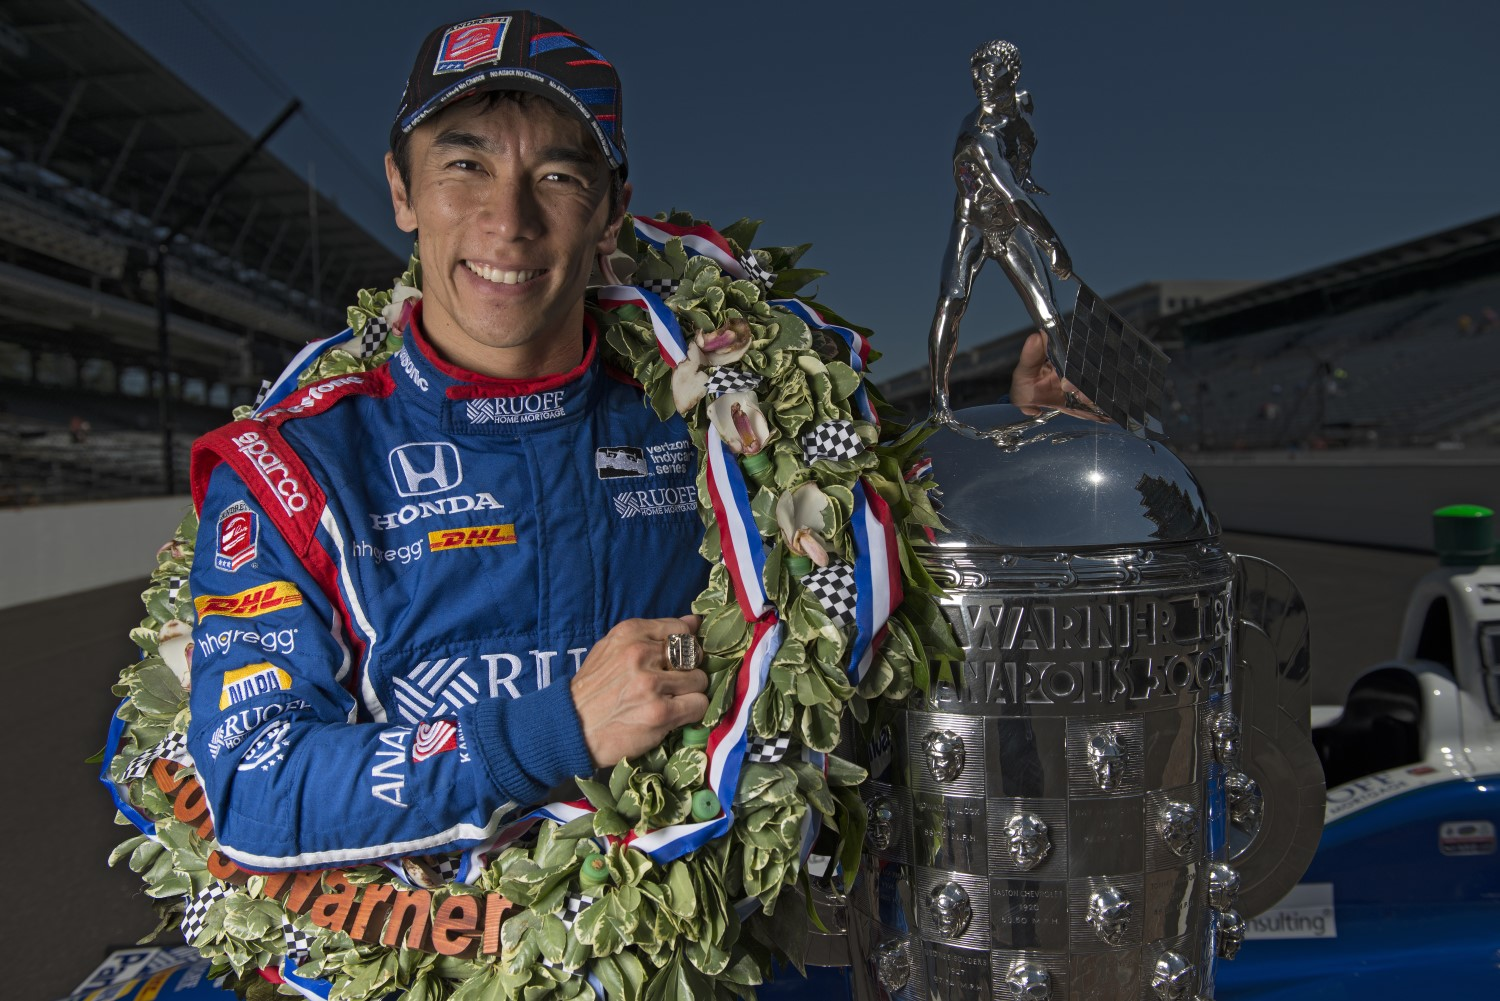 Sato with Borg Warner Trophy he will not get to keep. The winner gets a Baby Borg that is small and cheap.